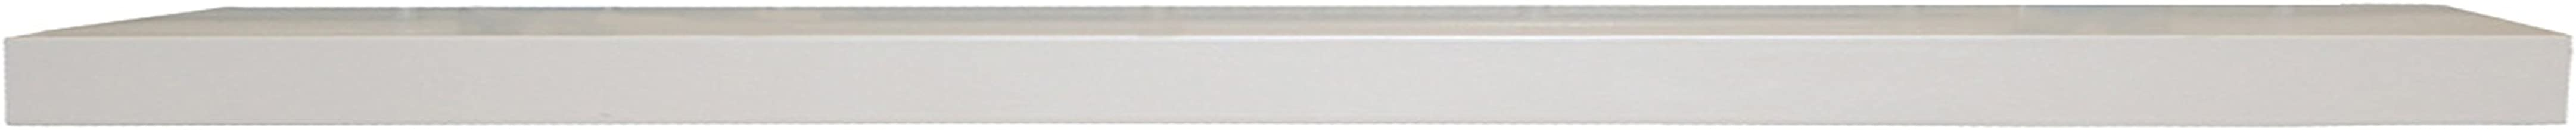 InPlace Shelving 9084672 60 in W x 8 in D x 1.25 in H Slimline Floating Wall Shelf with Invisible Brackets, White